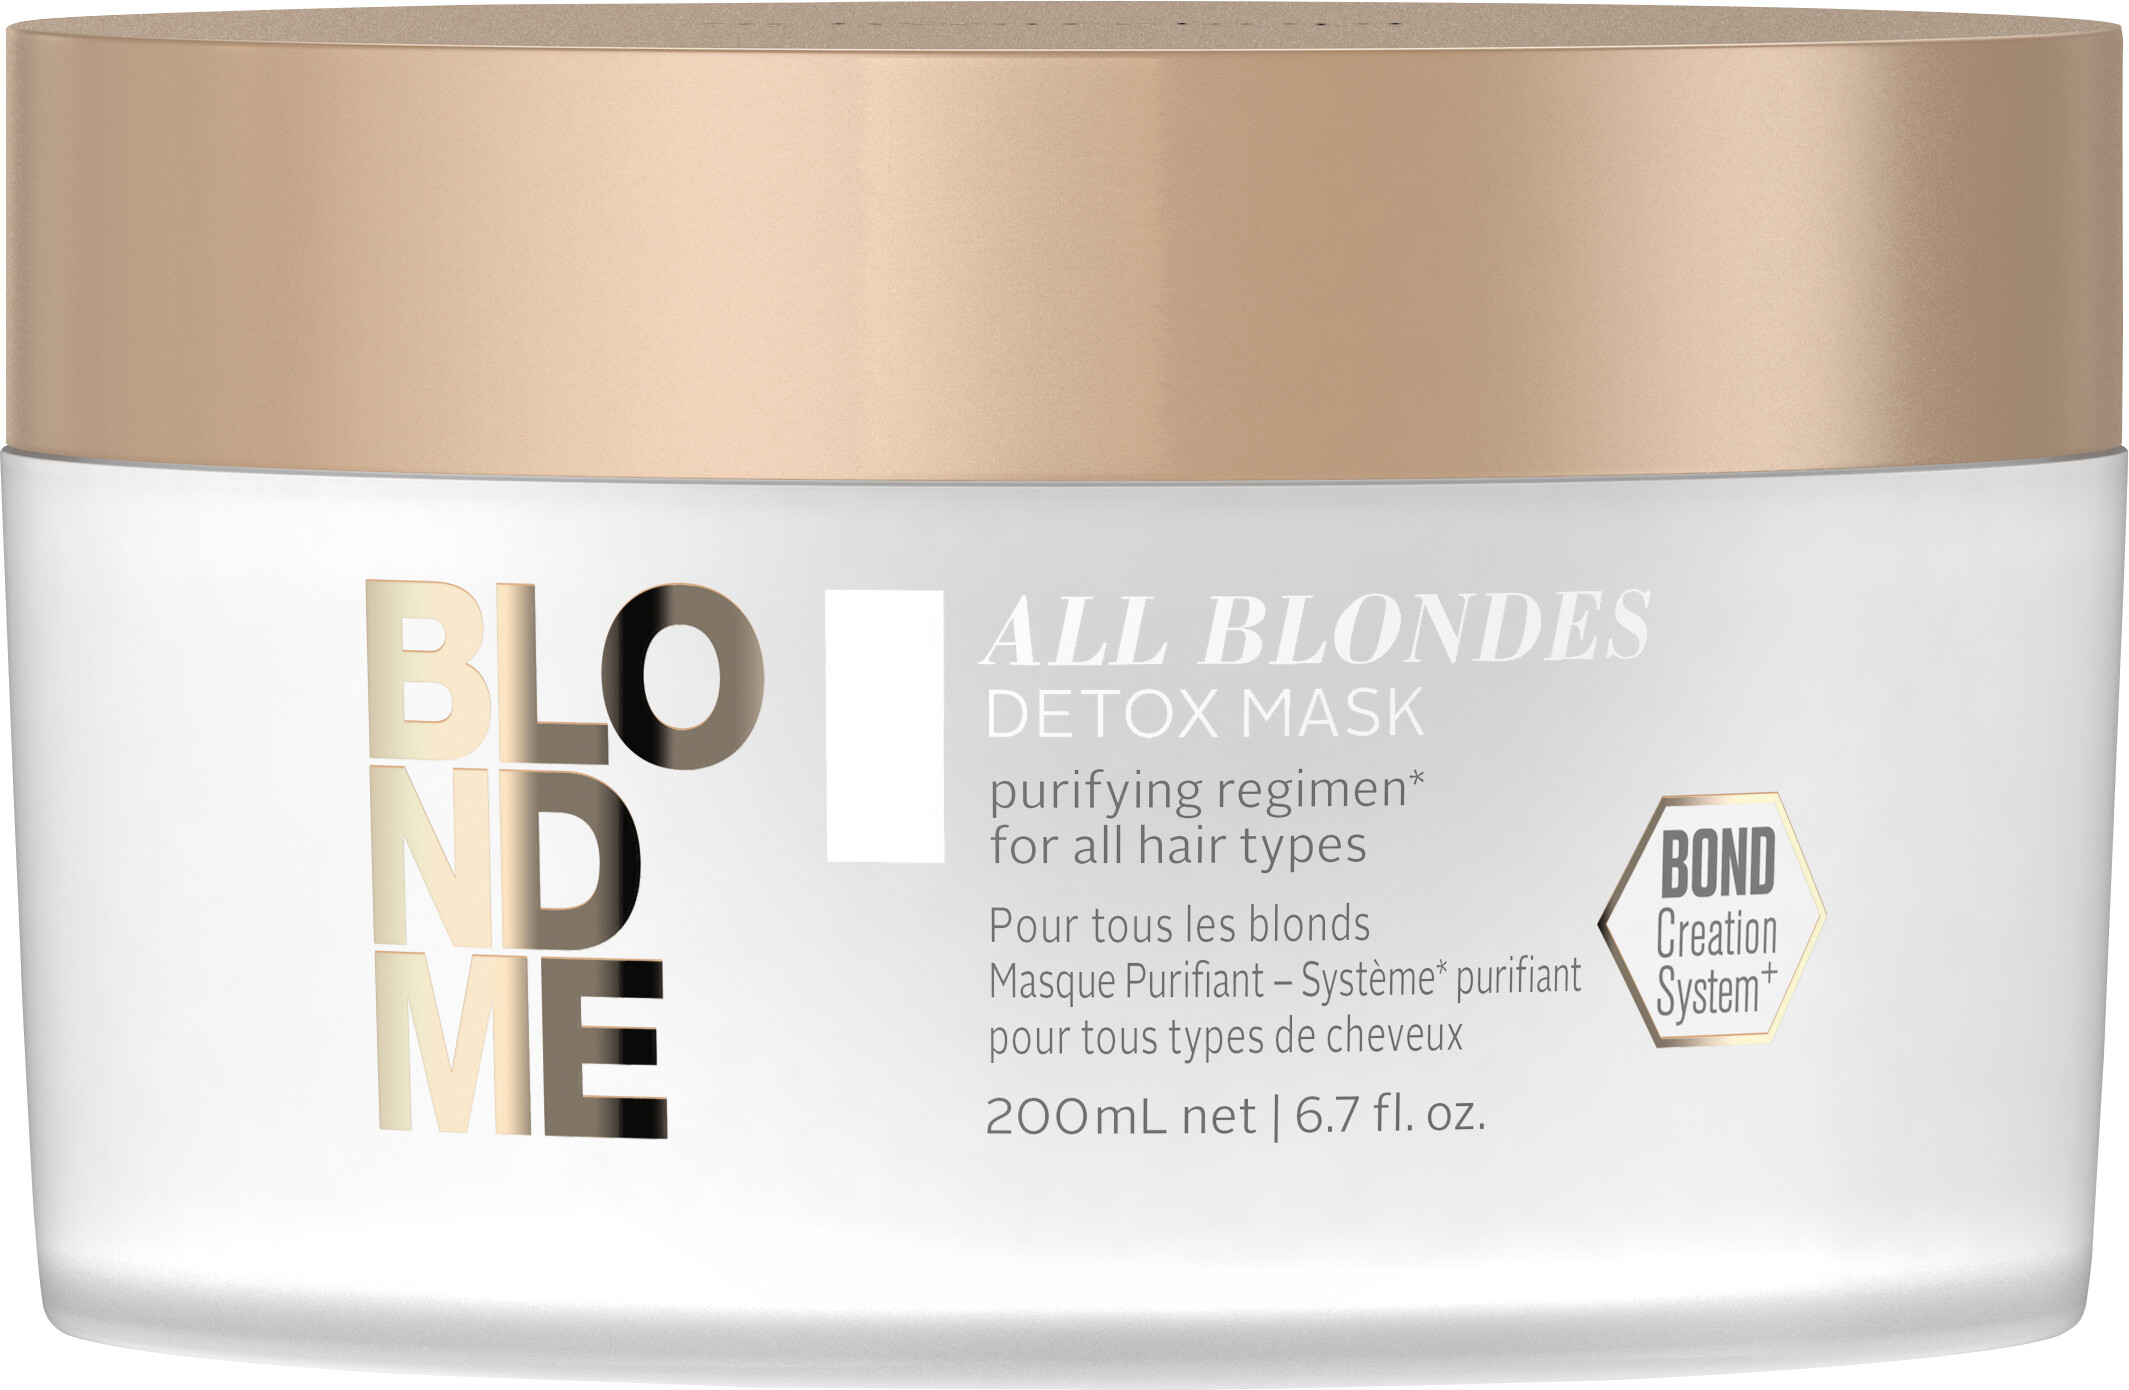 Haircare Products Schwarzkopf Professional BlondMe All Blondes Detox Mask 200ml